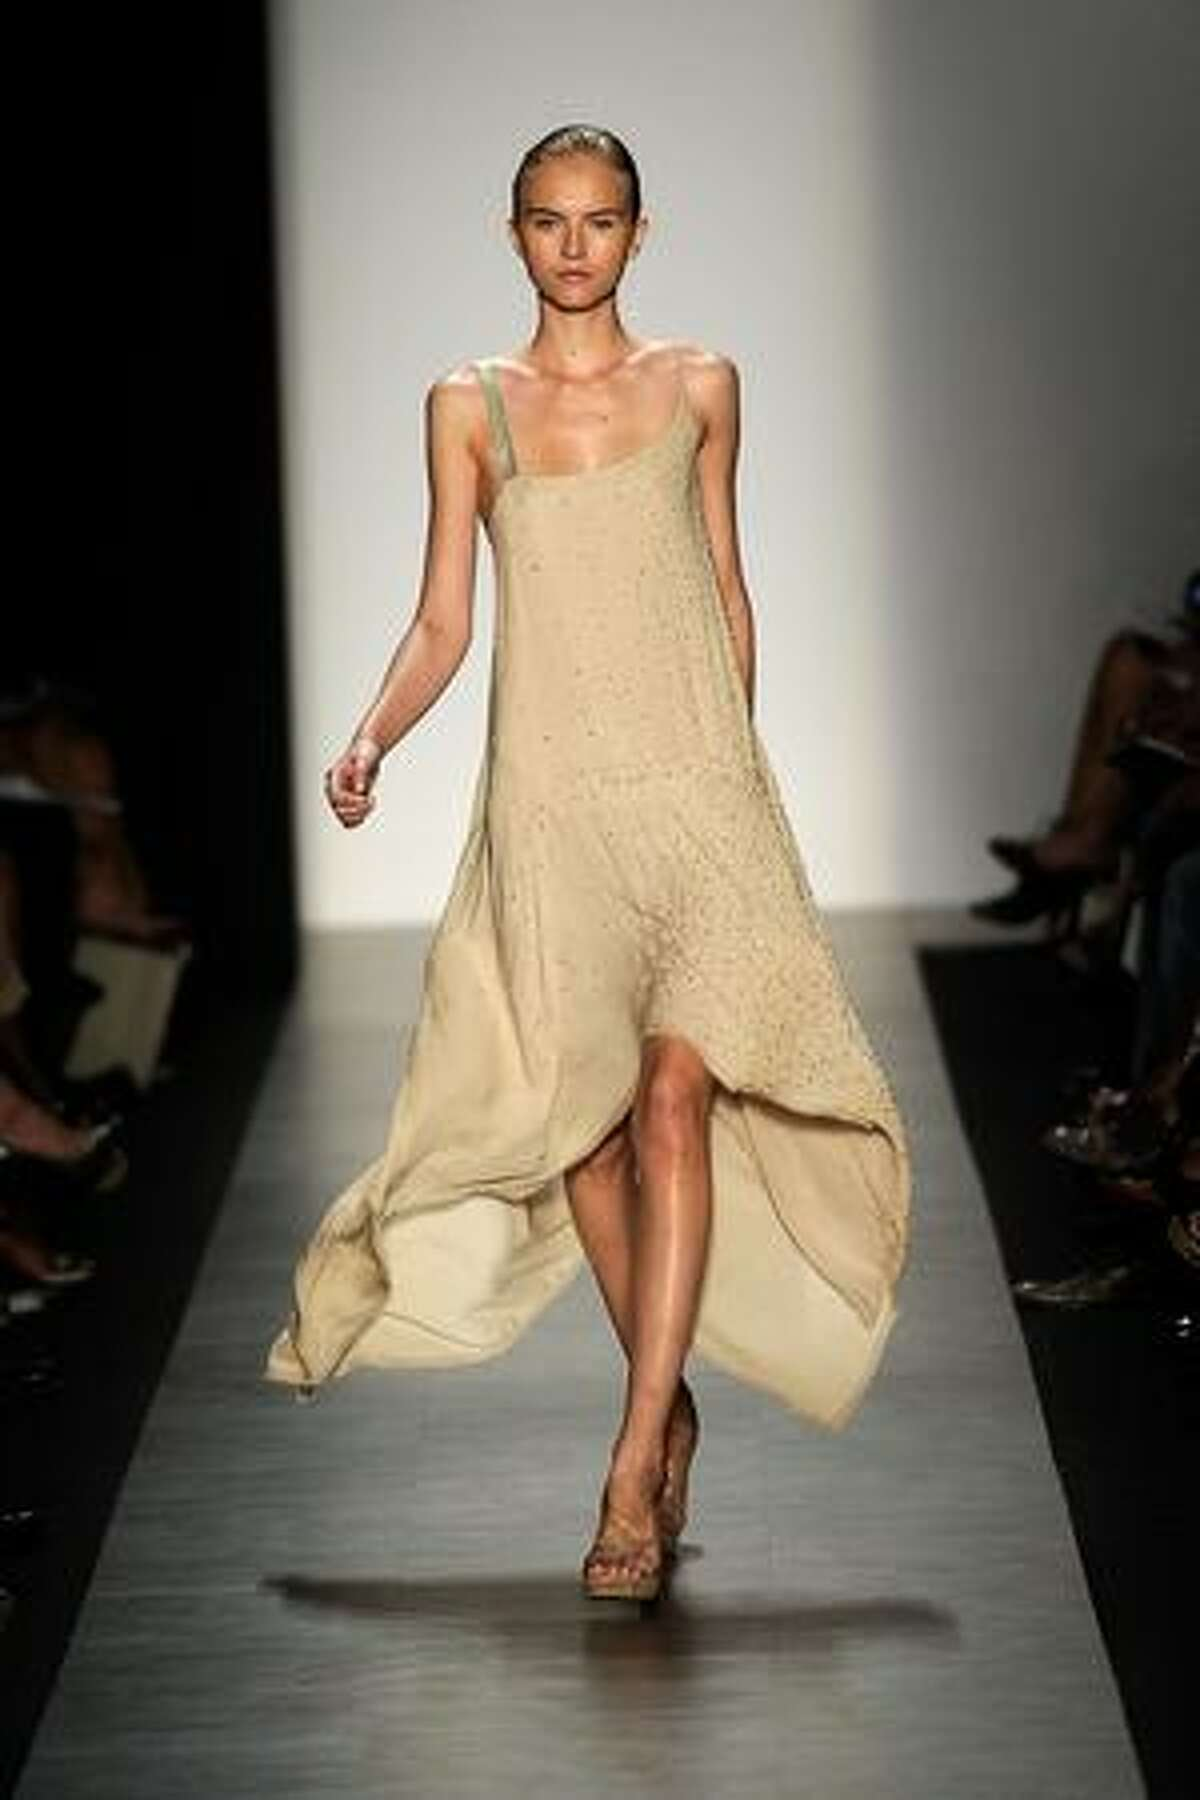 A model displays a creation by Max Azria.